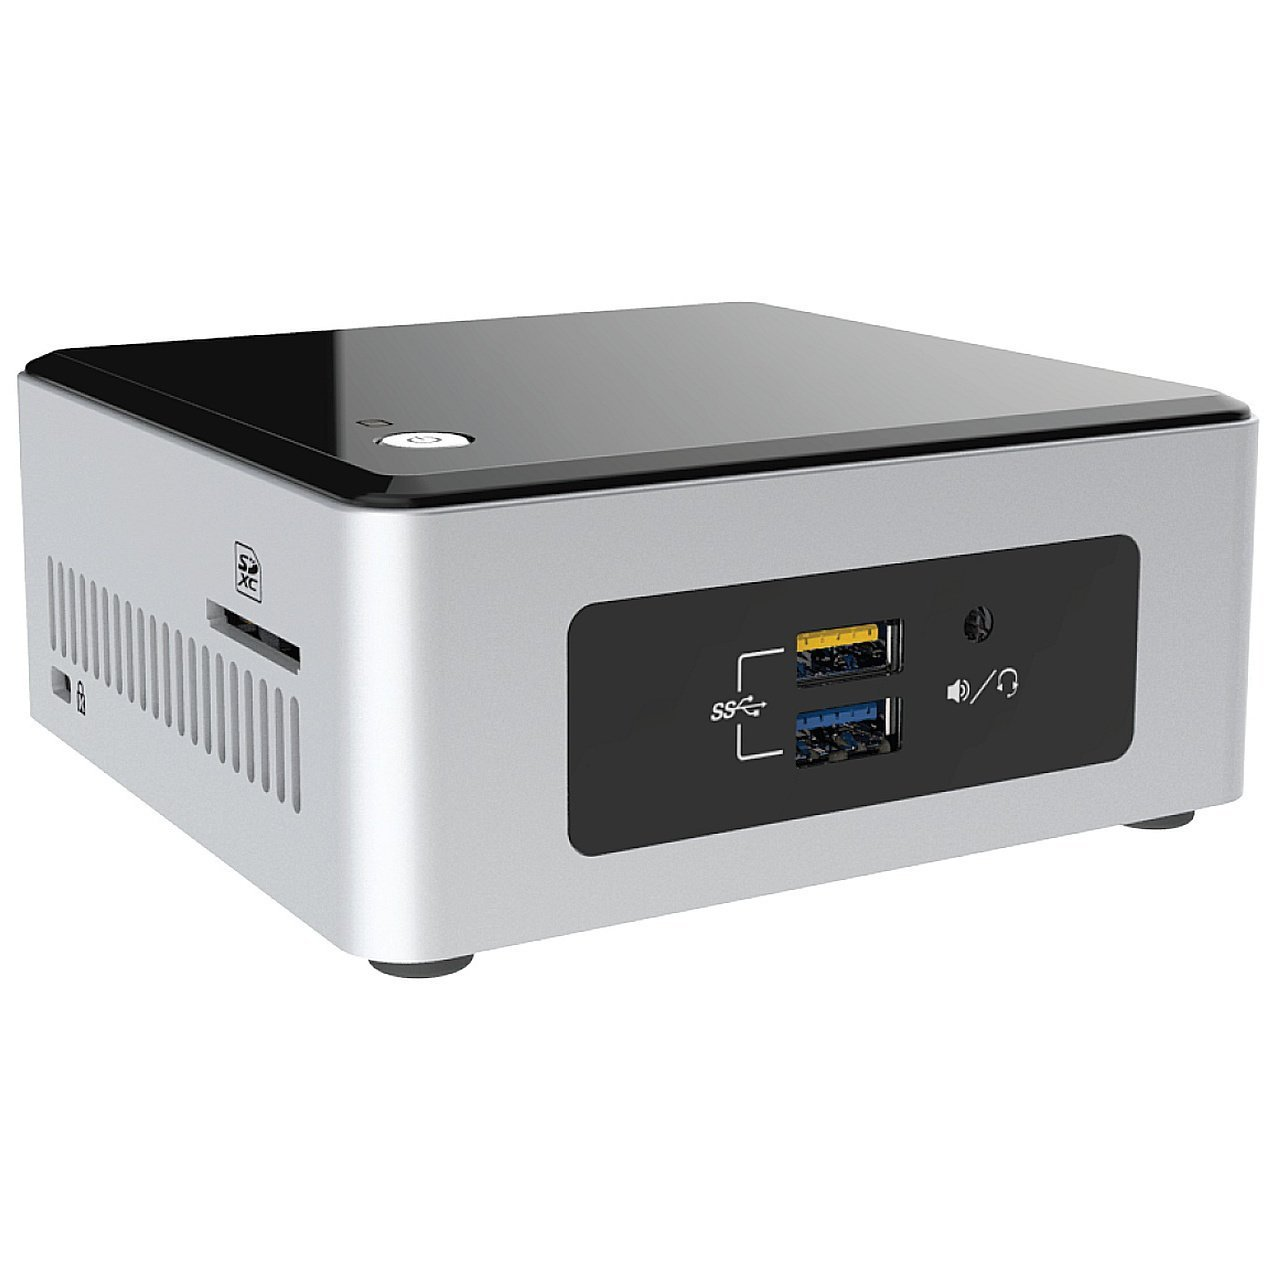 Mini PC Intel NUC 5 Intel Celeron